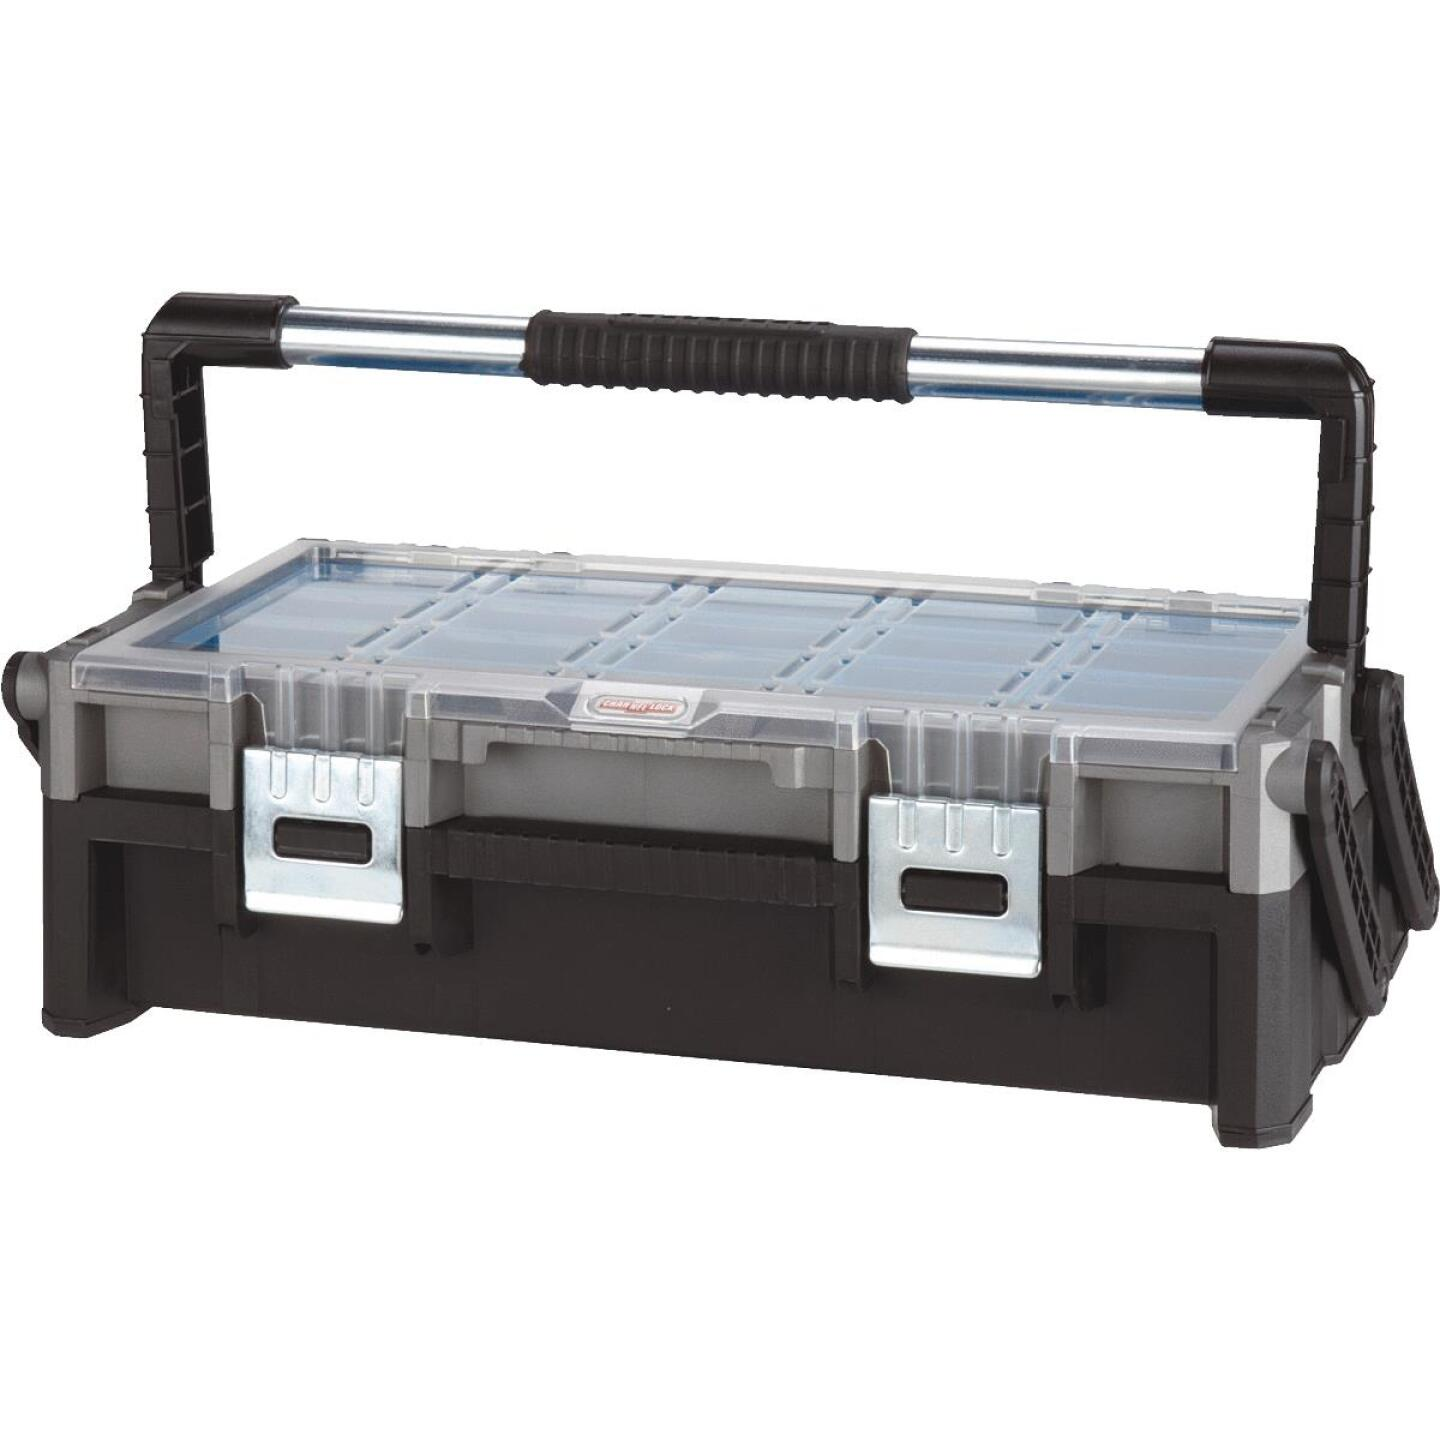 Channellock 22.5 In. Cantilever Parts Organizer Storage Box Image 1